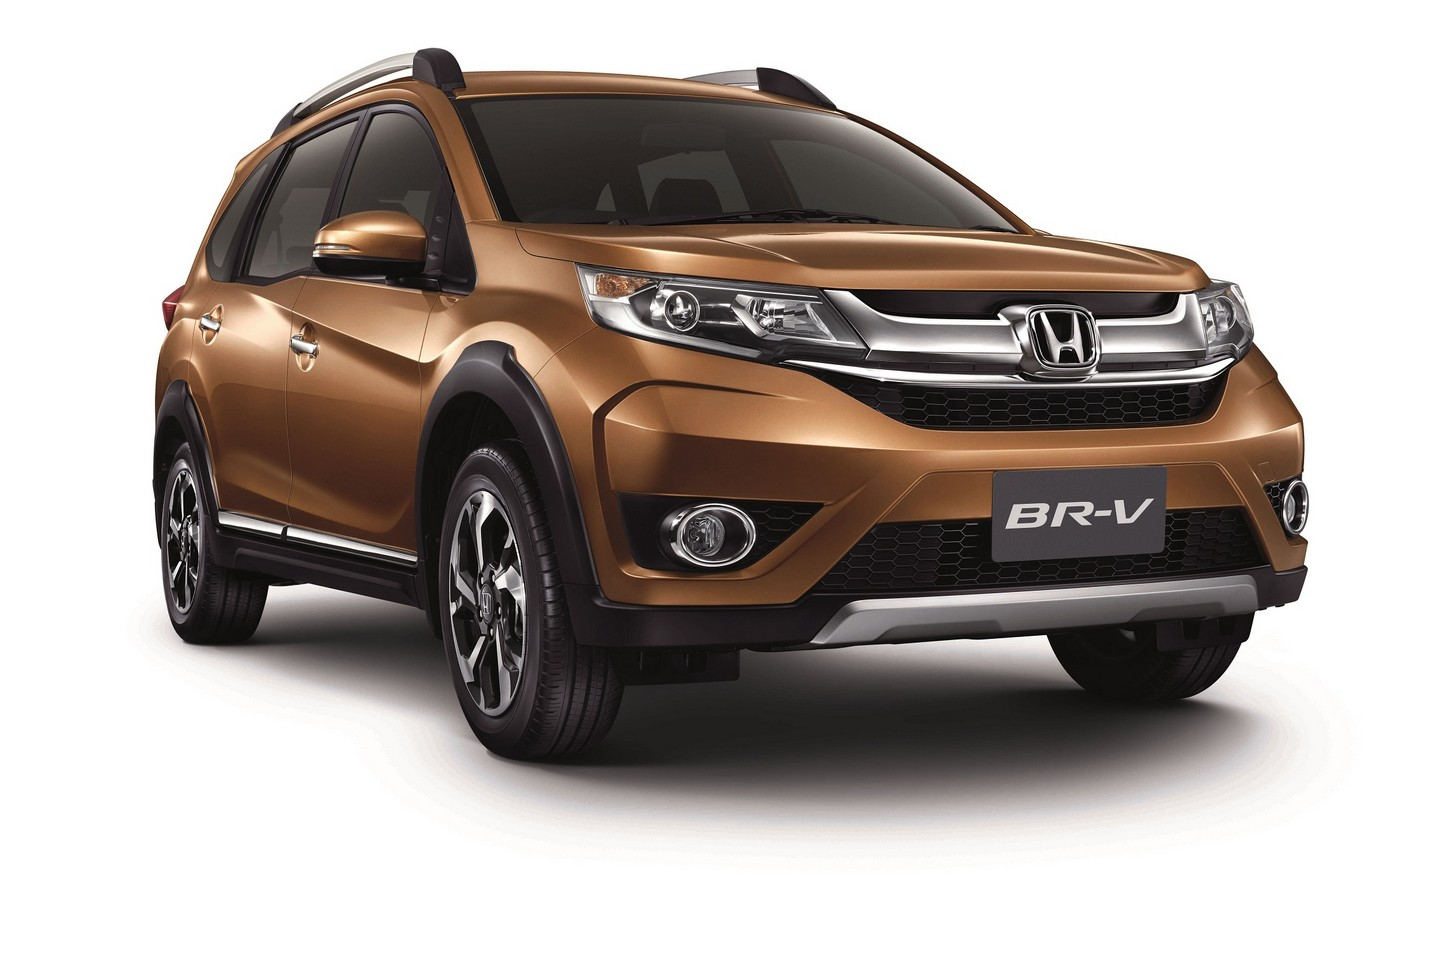 Honda BR-V 2017 Price in Pakistan, Pictures and Reviews | PakWheels